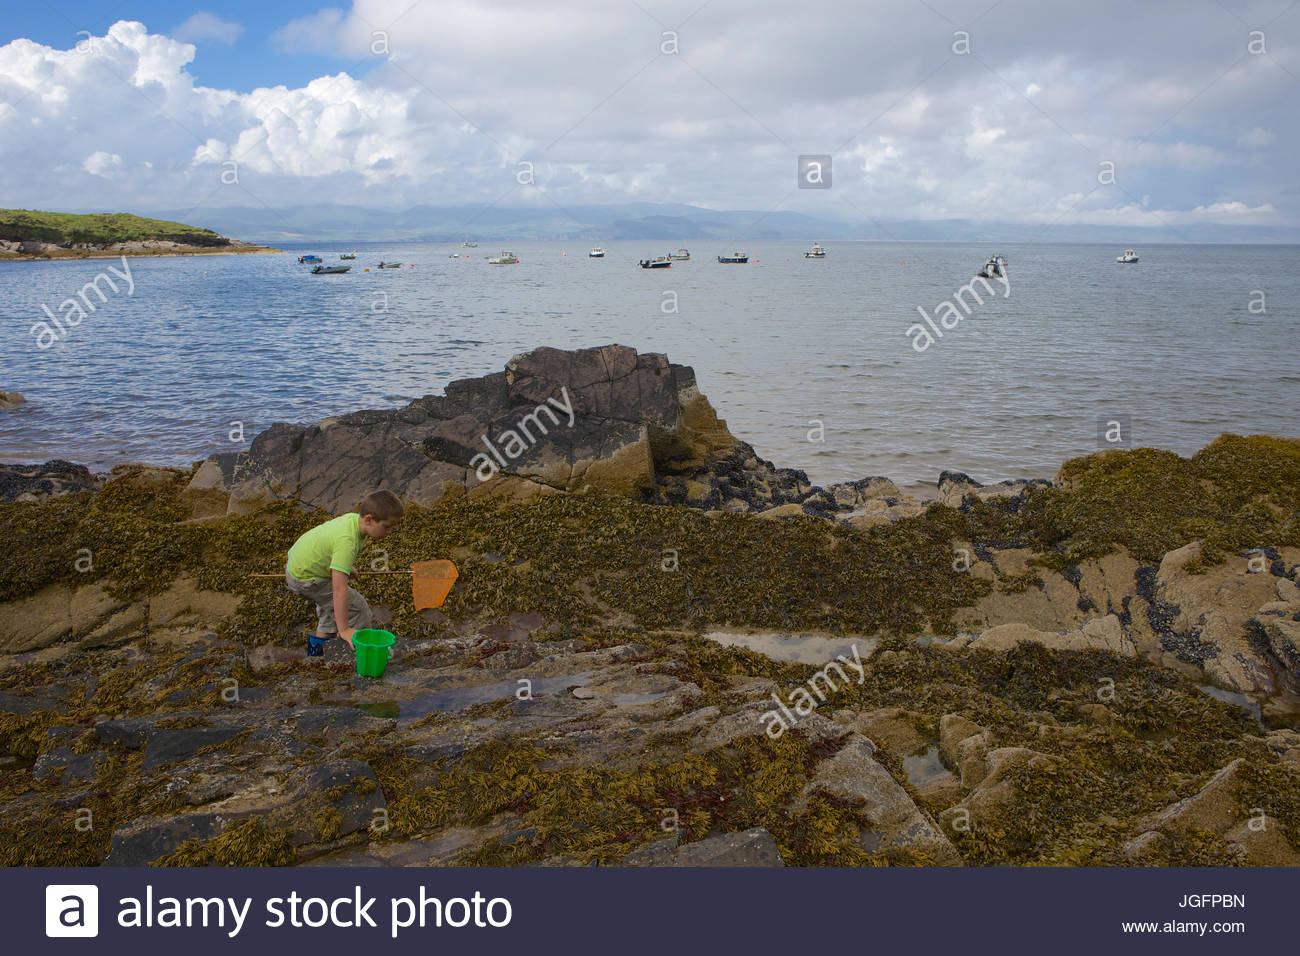 A young boy searches rock pools along the 111 mile Ring of Kerry, Ireland's ultimate scenic drive. - Stock Image